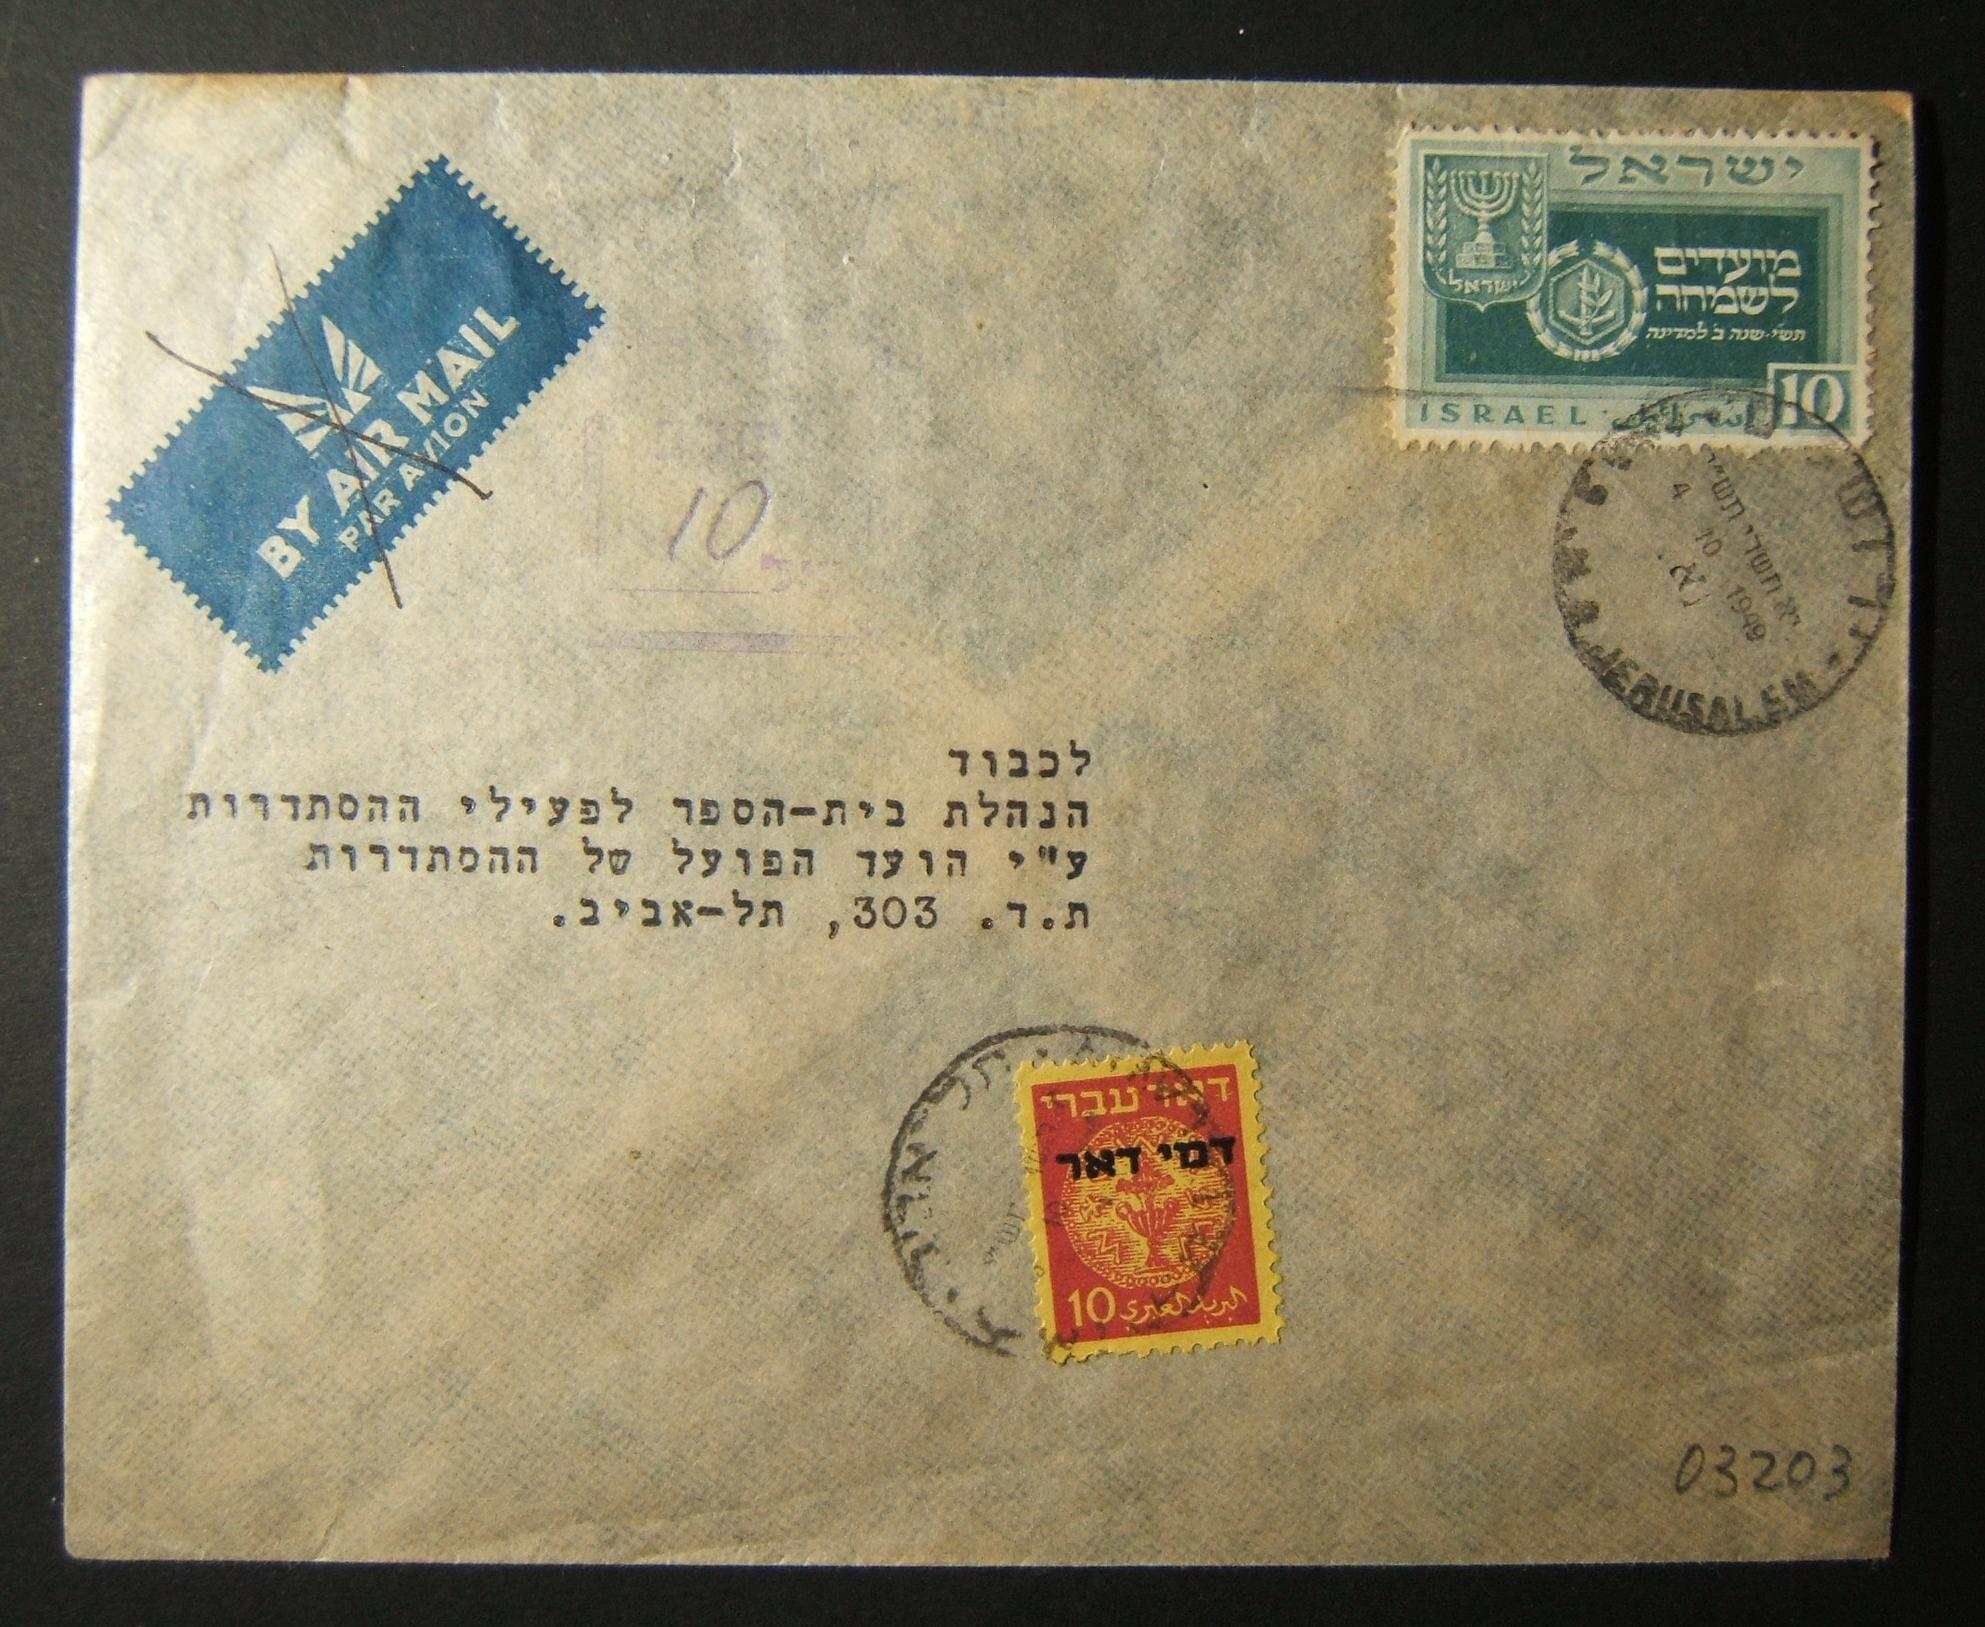 1949 domestic 2nd rate period taxed mail: 4-10-1949 comm. cv ex JERUSALEM 2 (sorting office) to TLV underfranked at 10Pr using 1949 New Year Ba19 and taxed 10 Prutot (twice the def